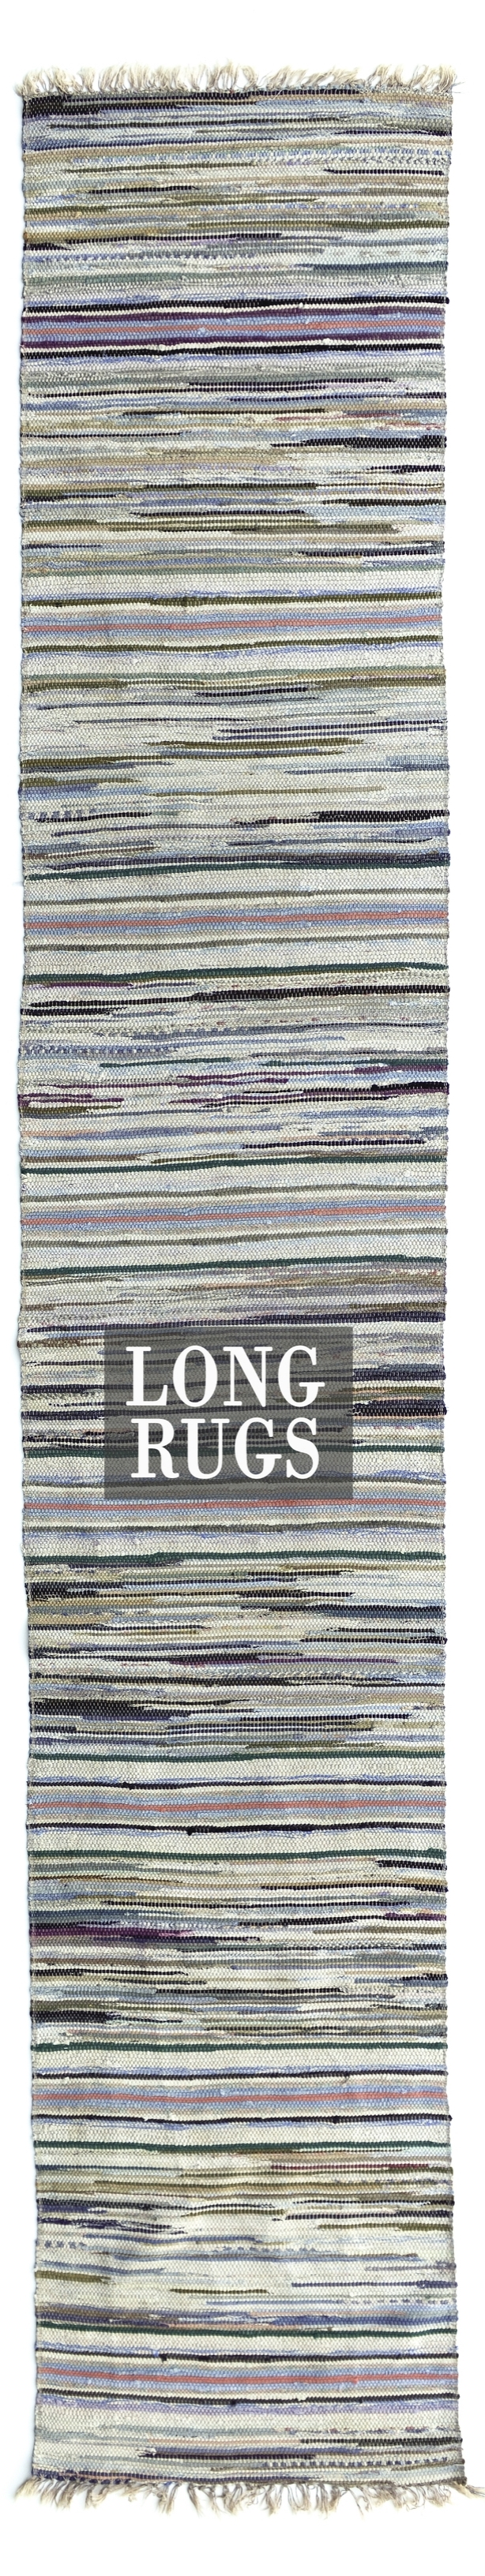 LONG+RUGS.jpeg